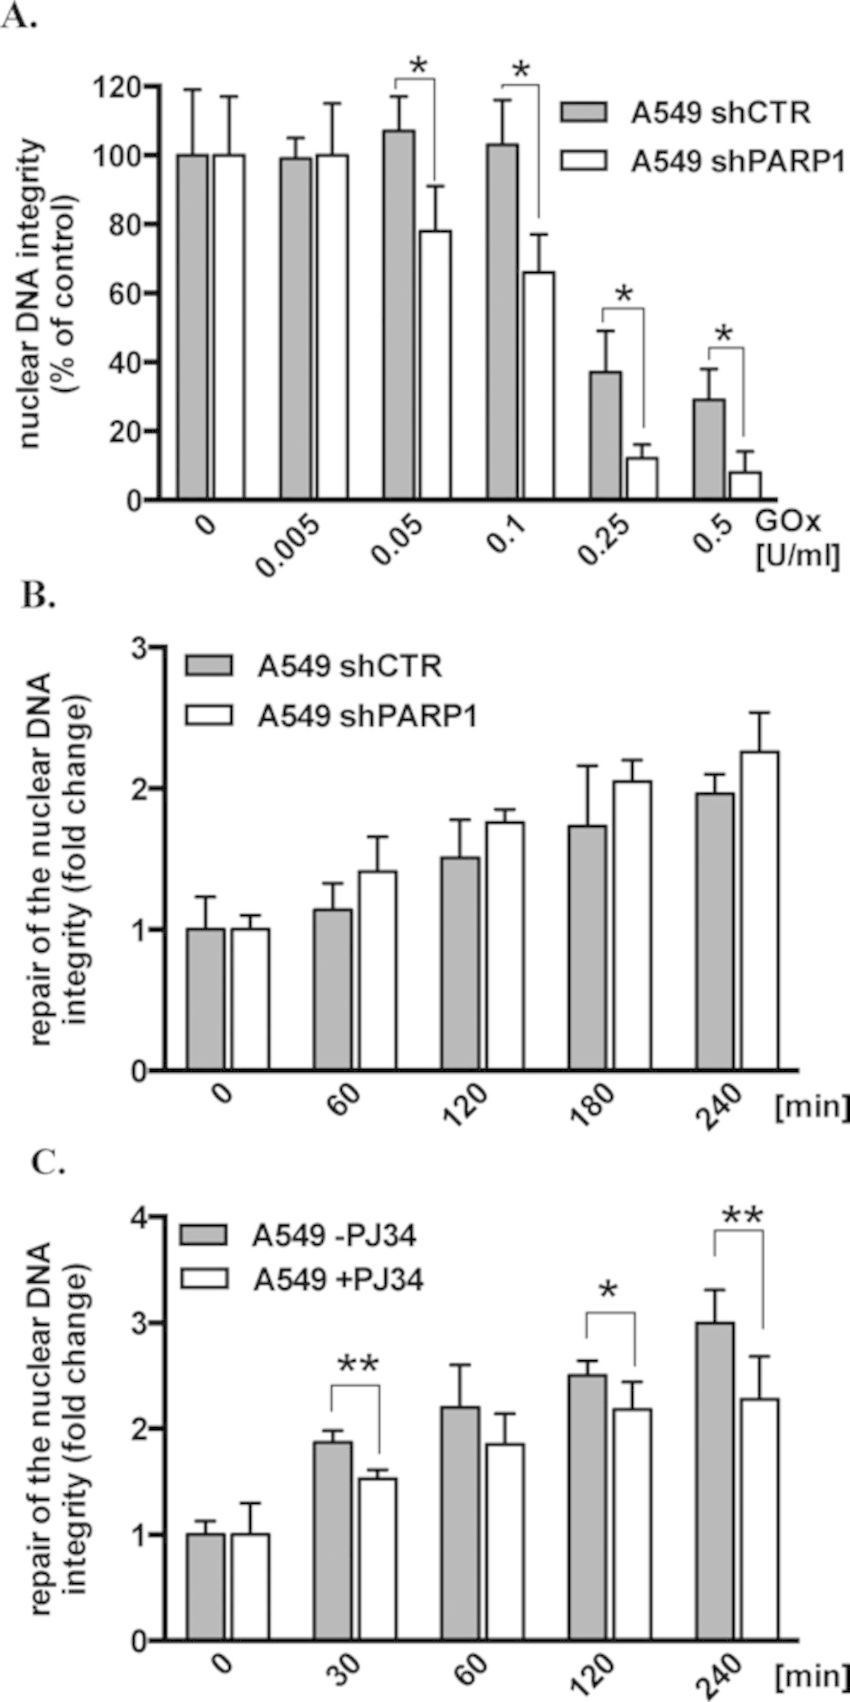 Effect of PARP1 depletion and PARP inhibition on the